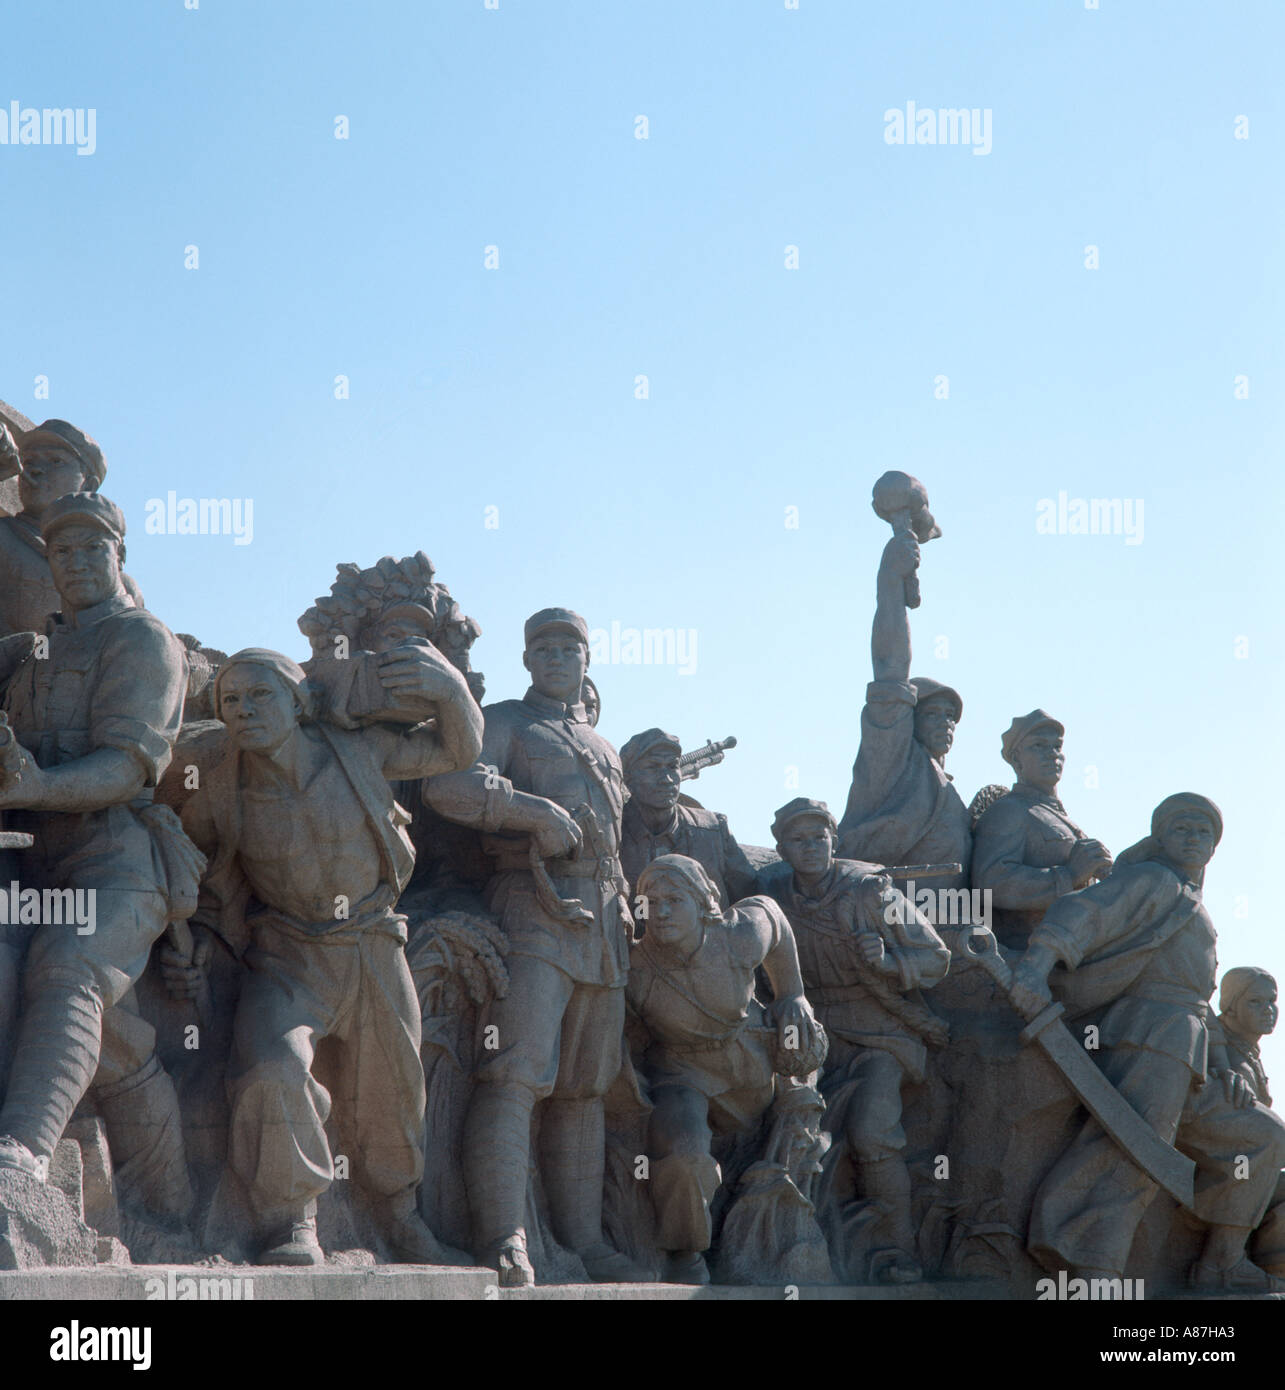 Statues in front of Mao Memorial Hall, Tiananmen Square, Beijing China - Stock Image